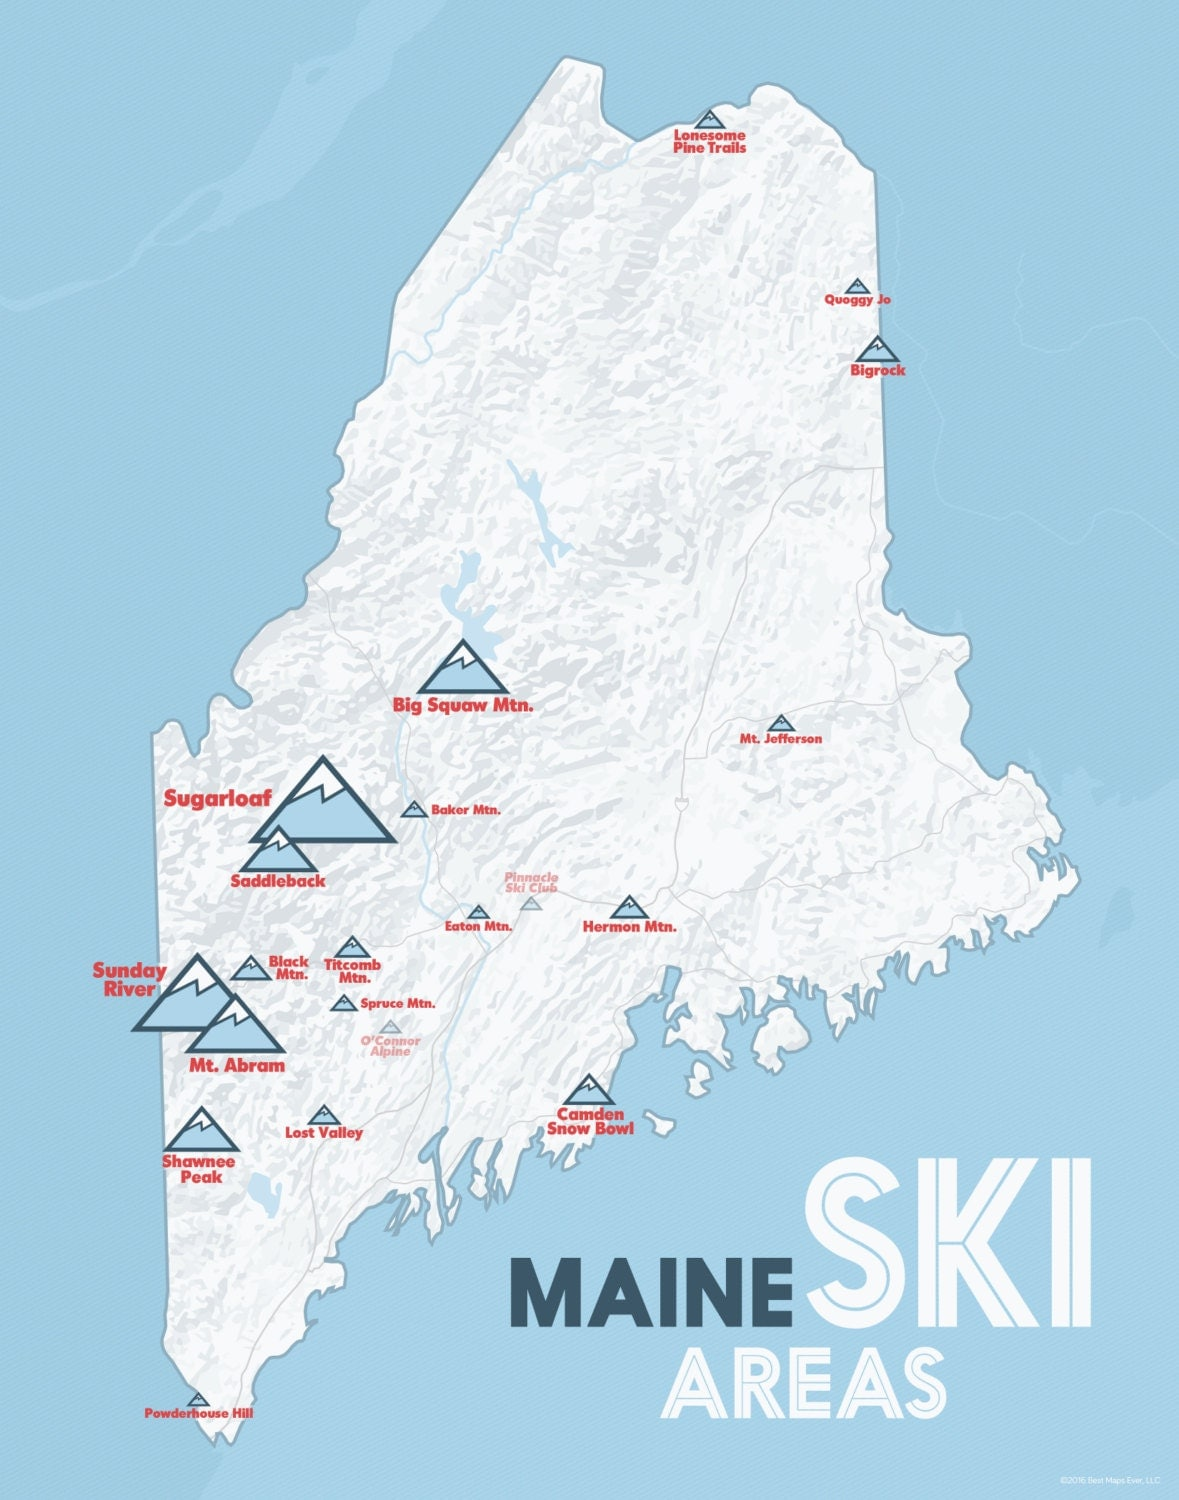 Maine Ski Resorts Map 11x14 Print by BestMapsEver on Etsy